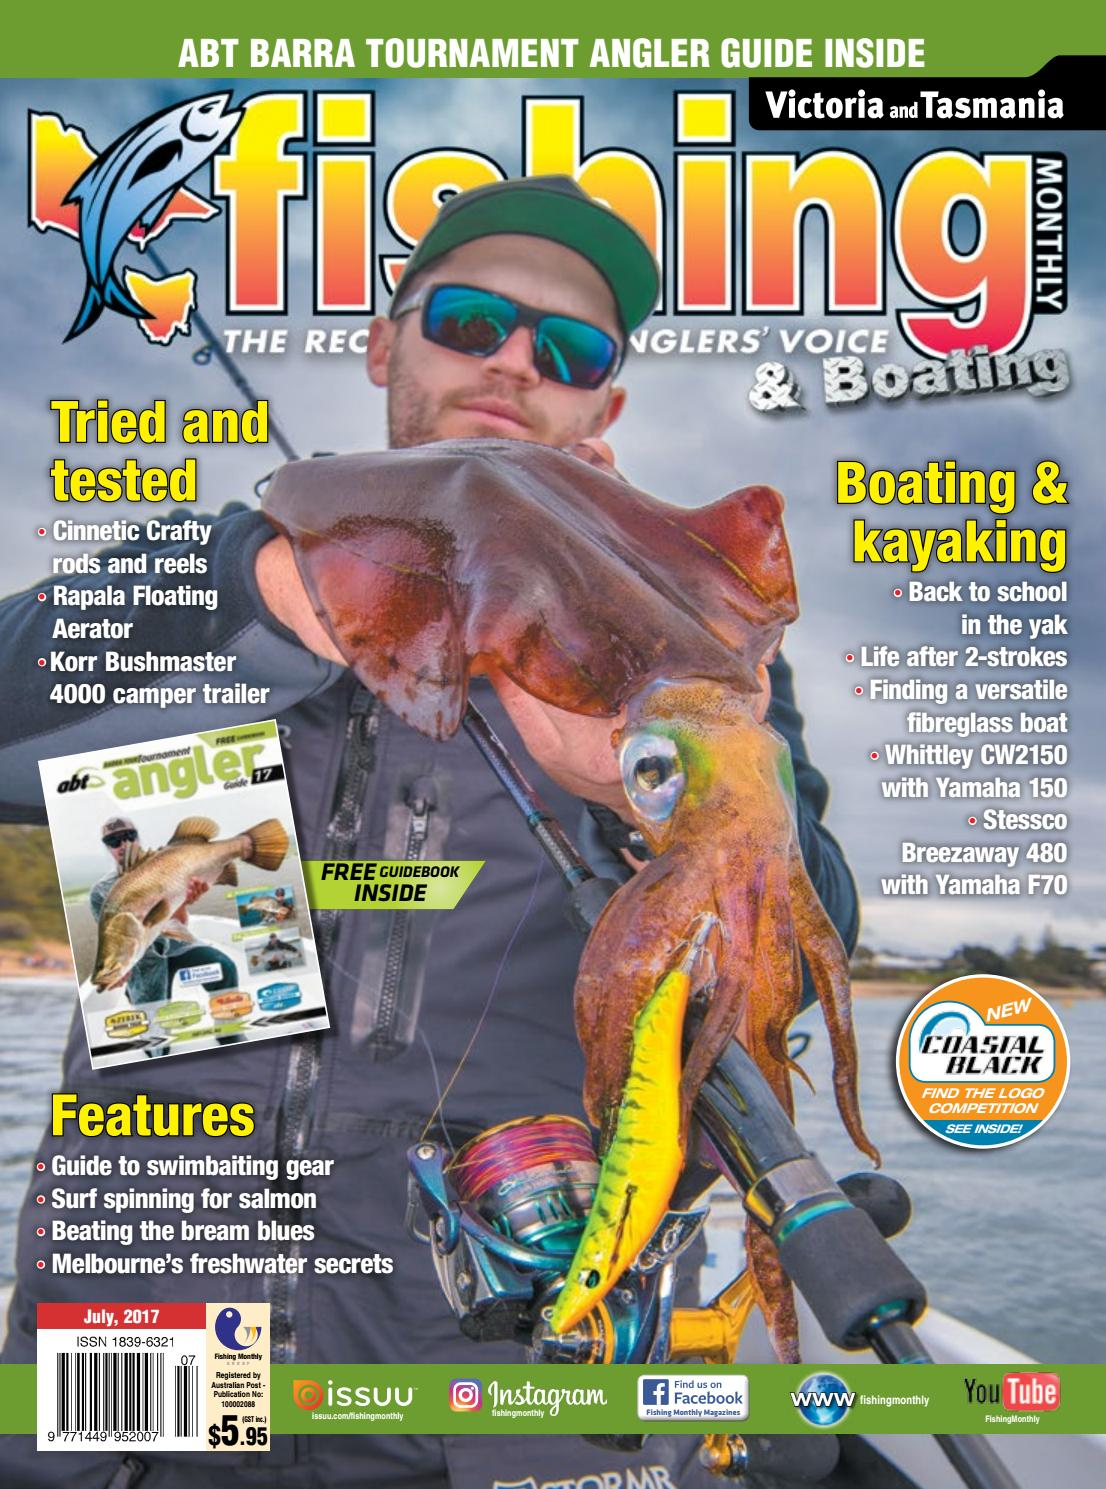 neptune somerton storage basket small storage baskets.htm vic tas fishing monthly july 2017 by fishing monthly issuu  vic tas fishing monthly july 2017 by